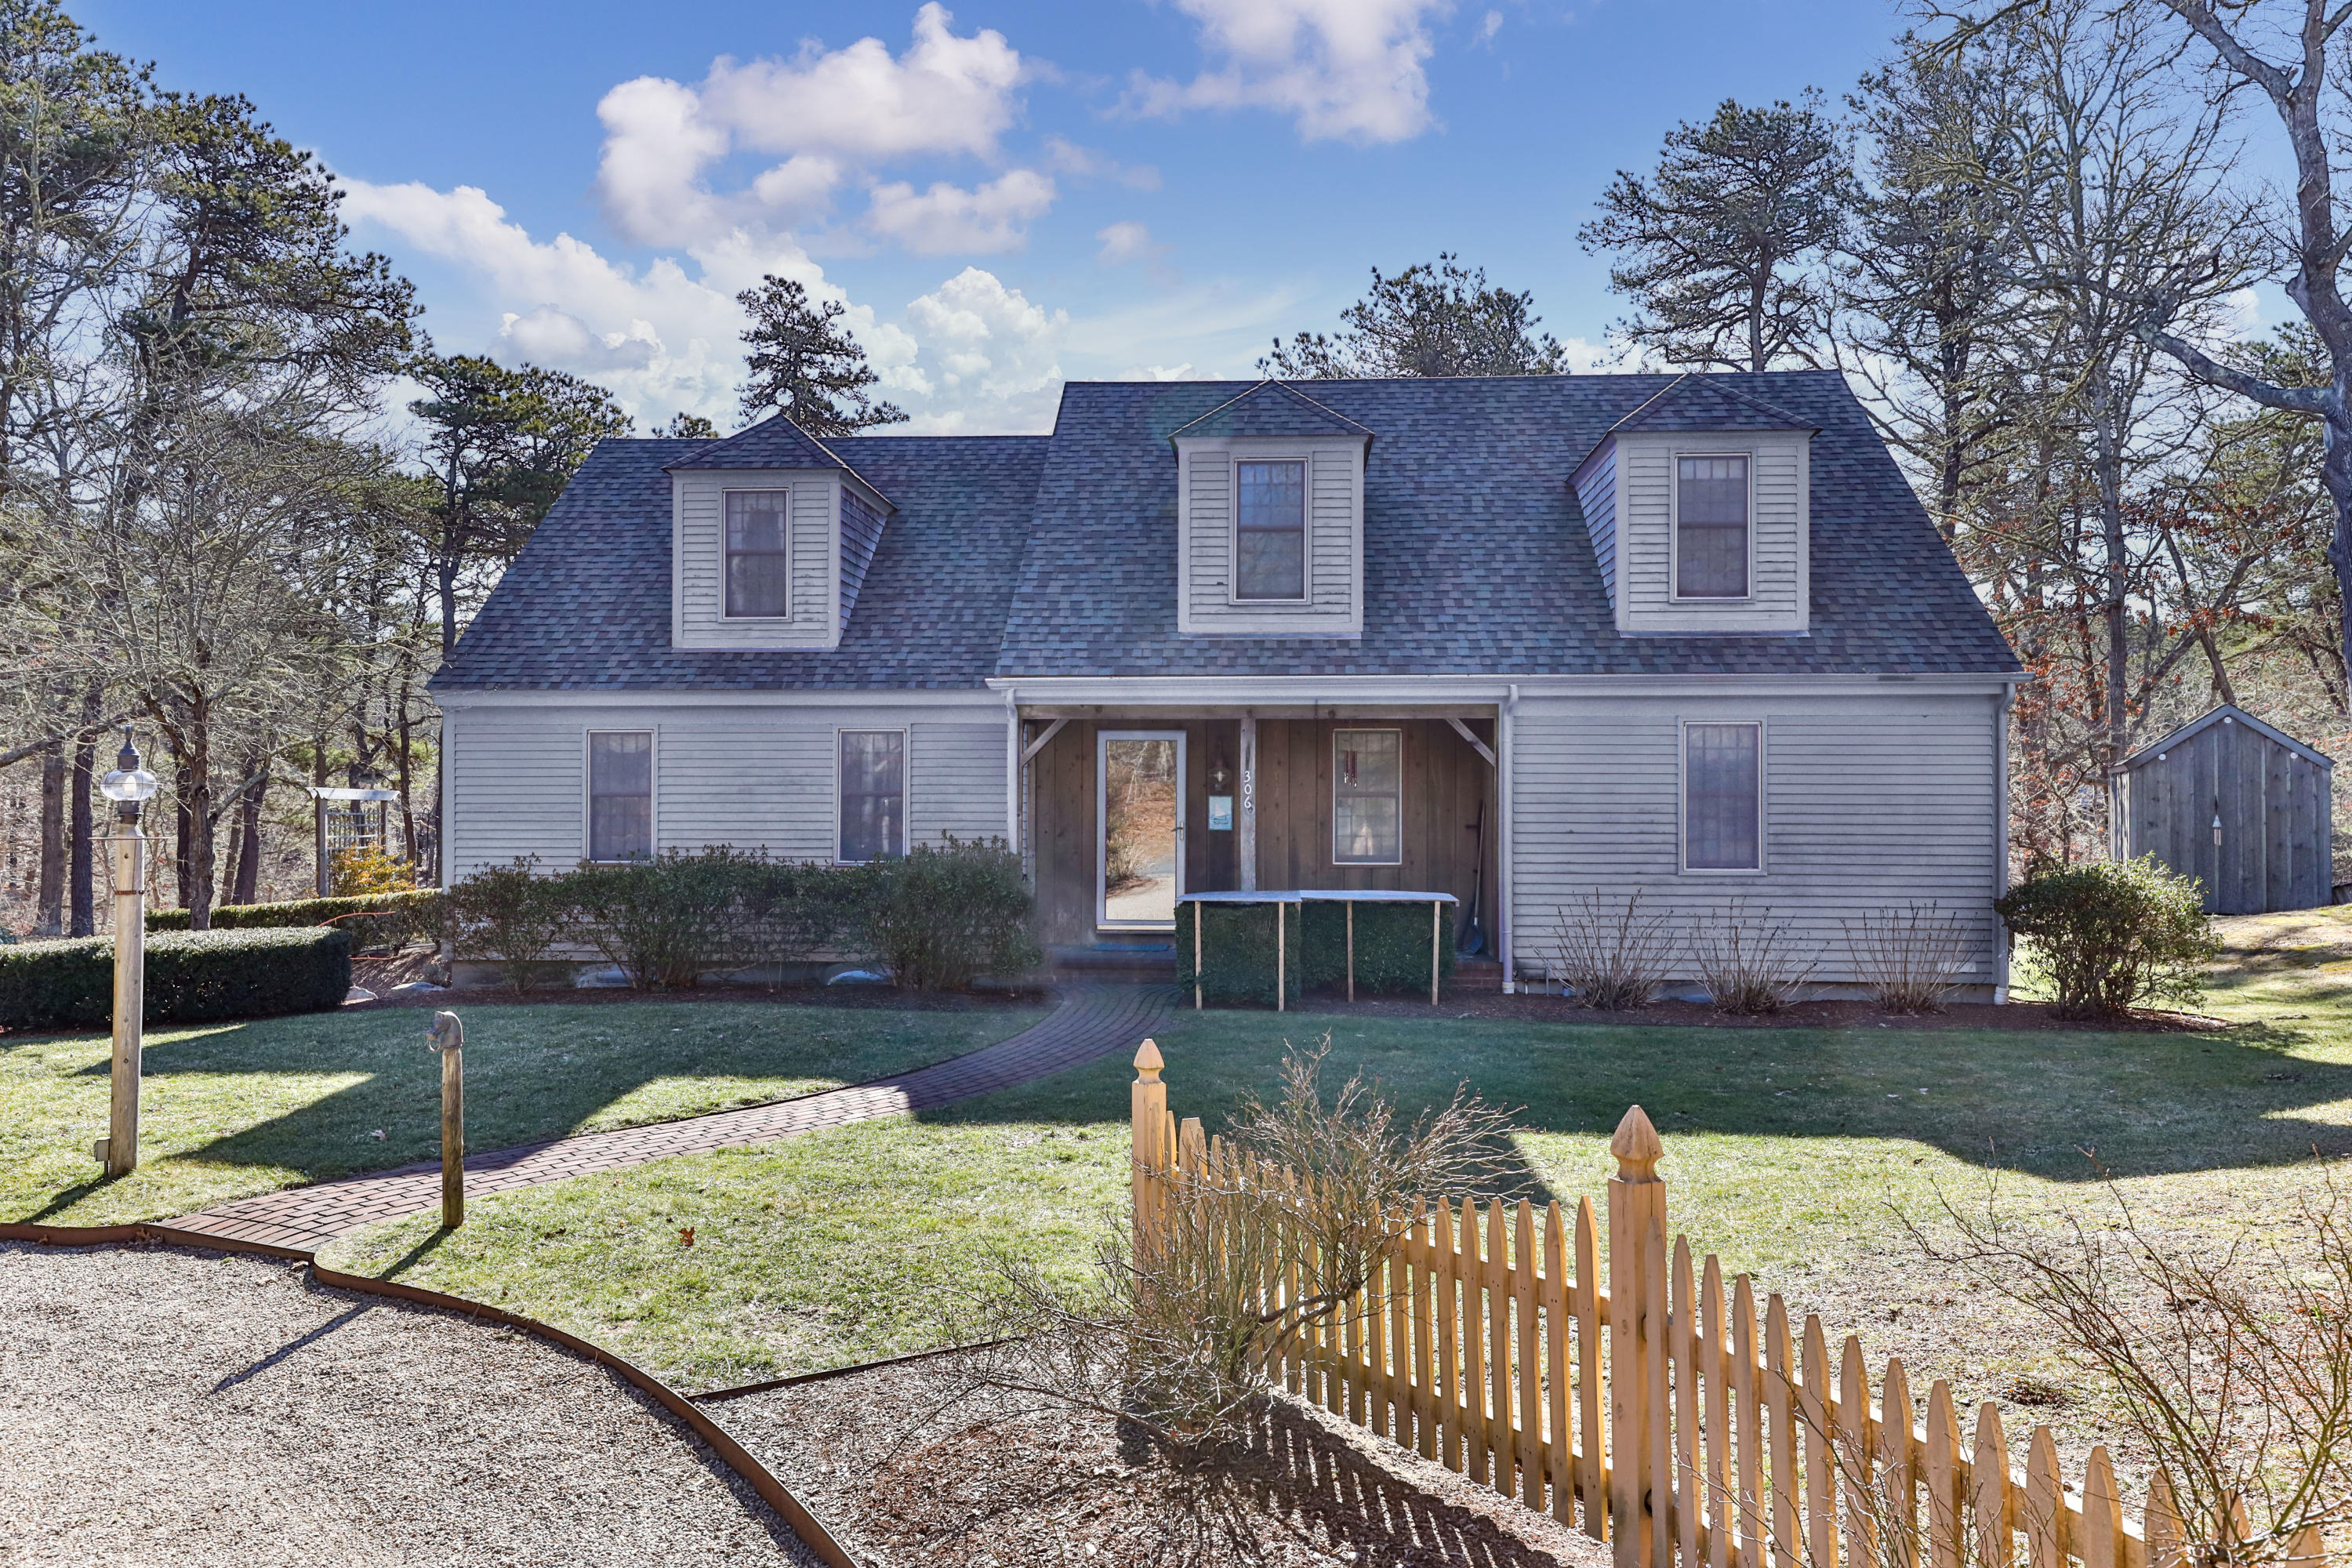 click to view more details 306 Old Comers Road, Chatham, MA 02633